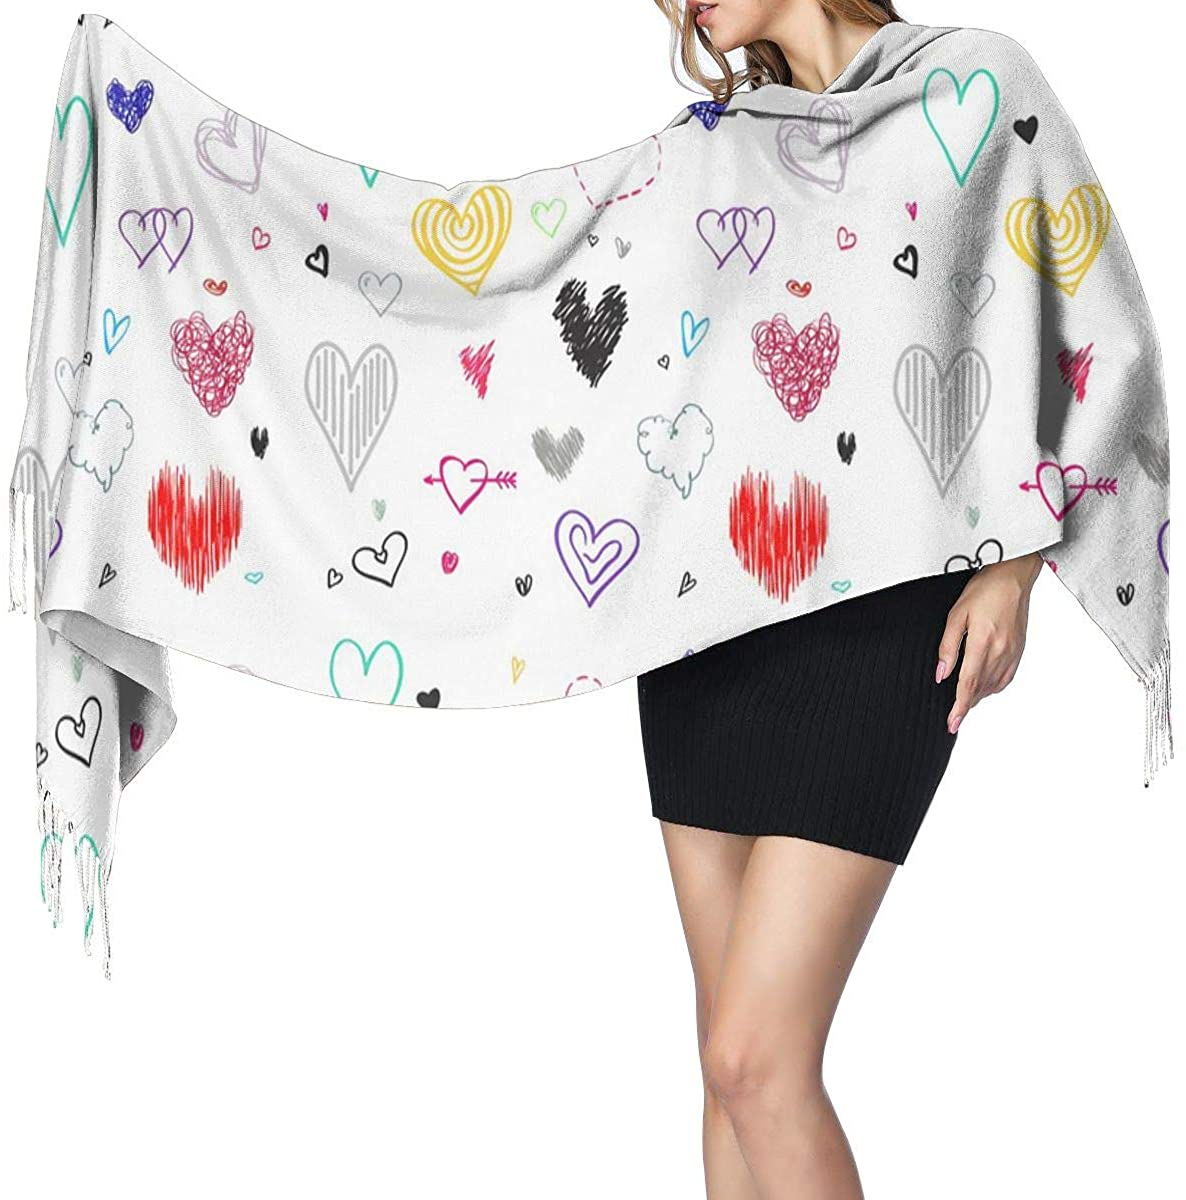 Extra Large -Womens Warm Long Shawl Wraps Large Scarves Cashmere Feel Scarf,Hearts White Love Sign,27x77 Inch